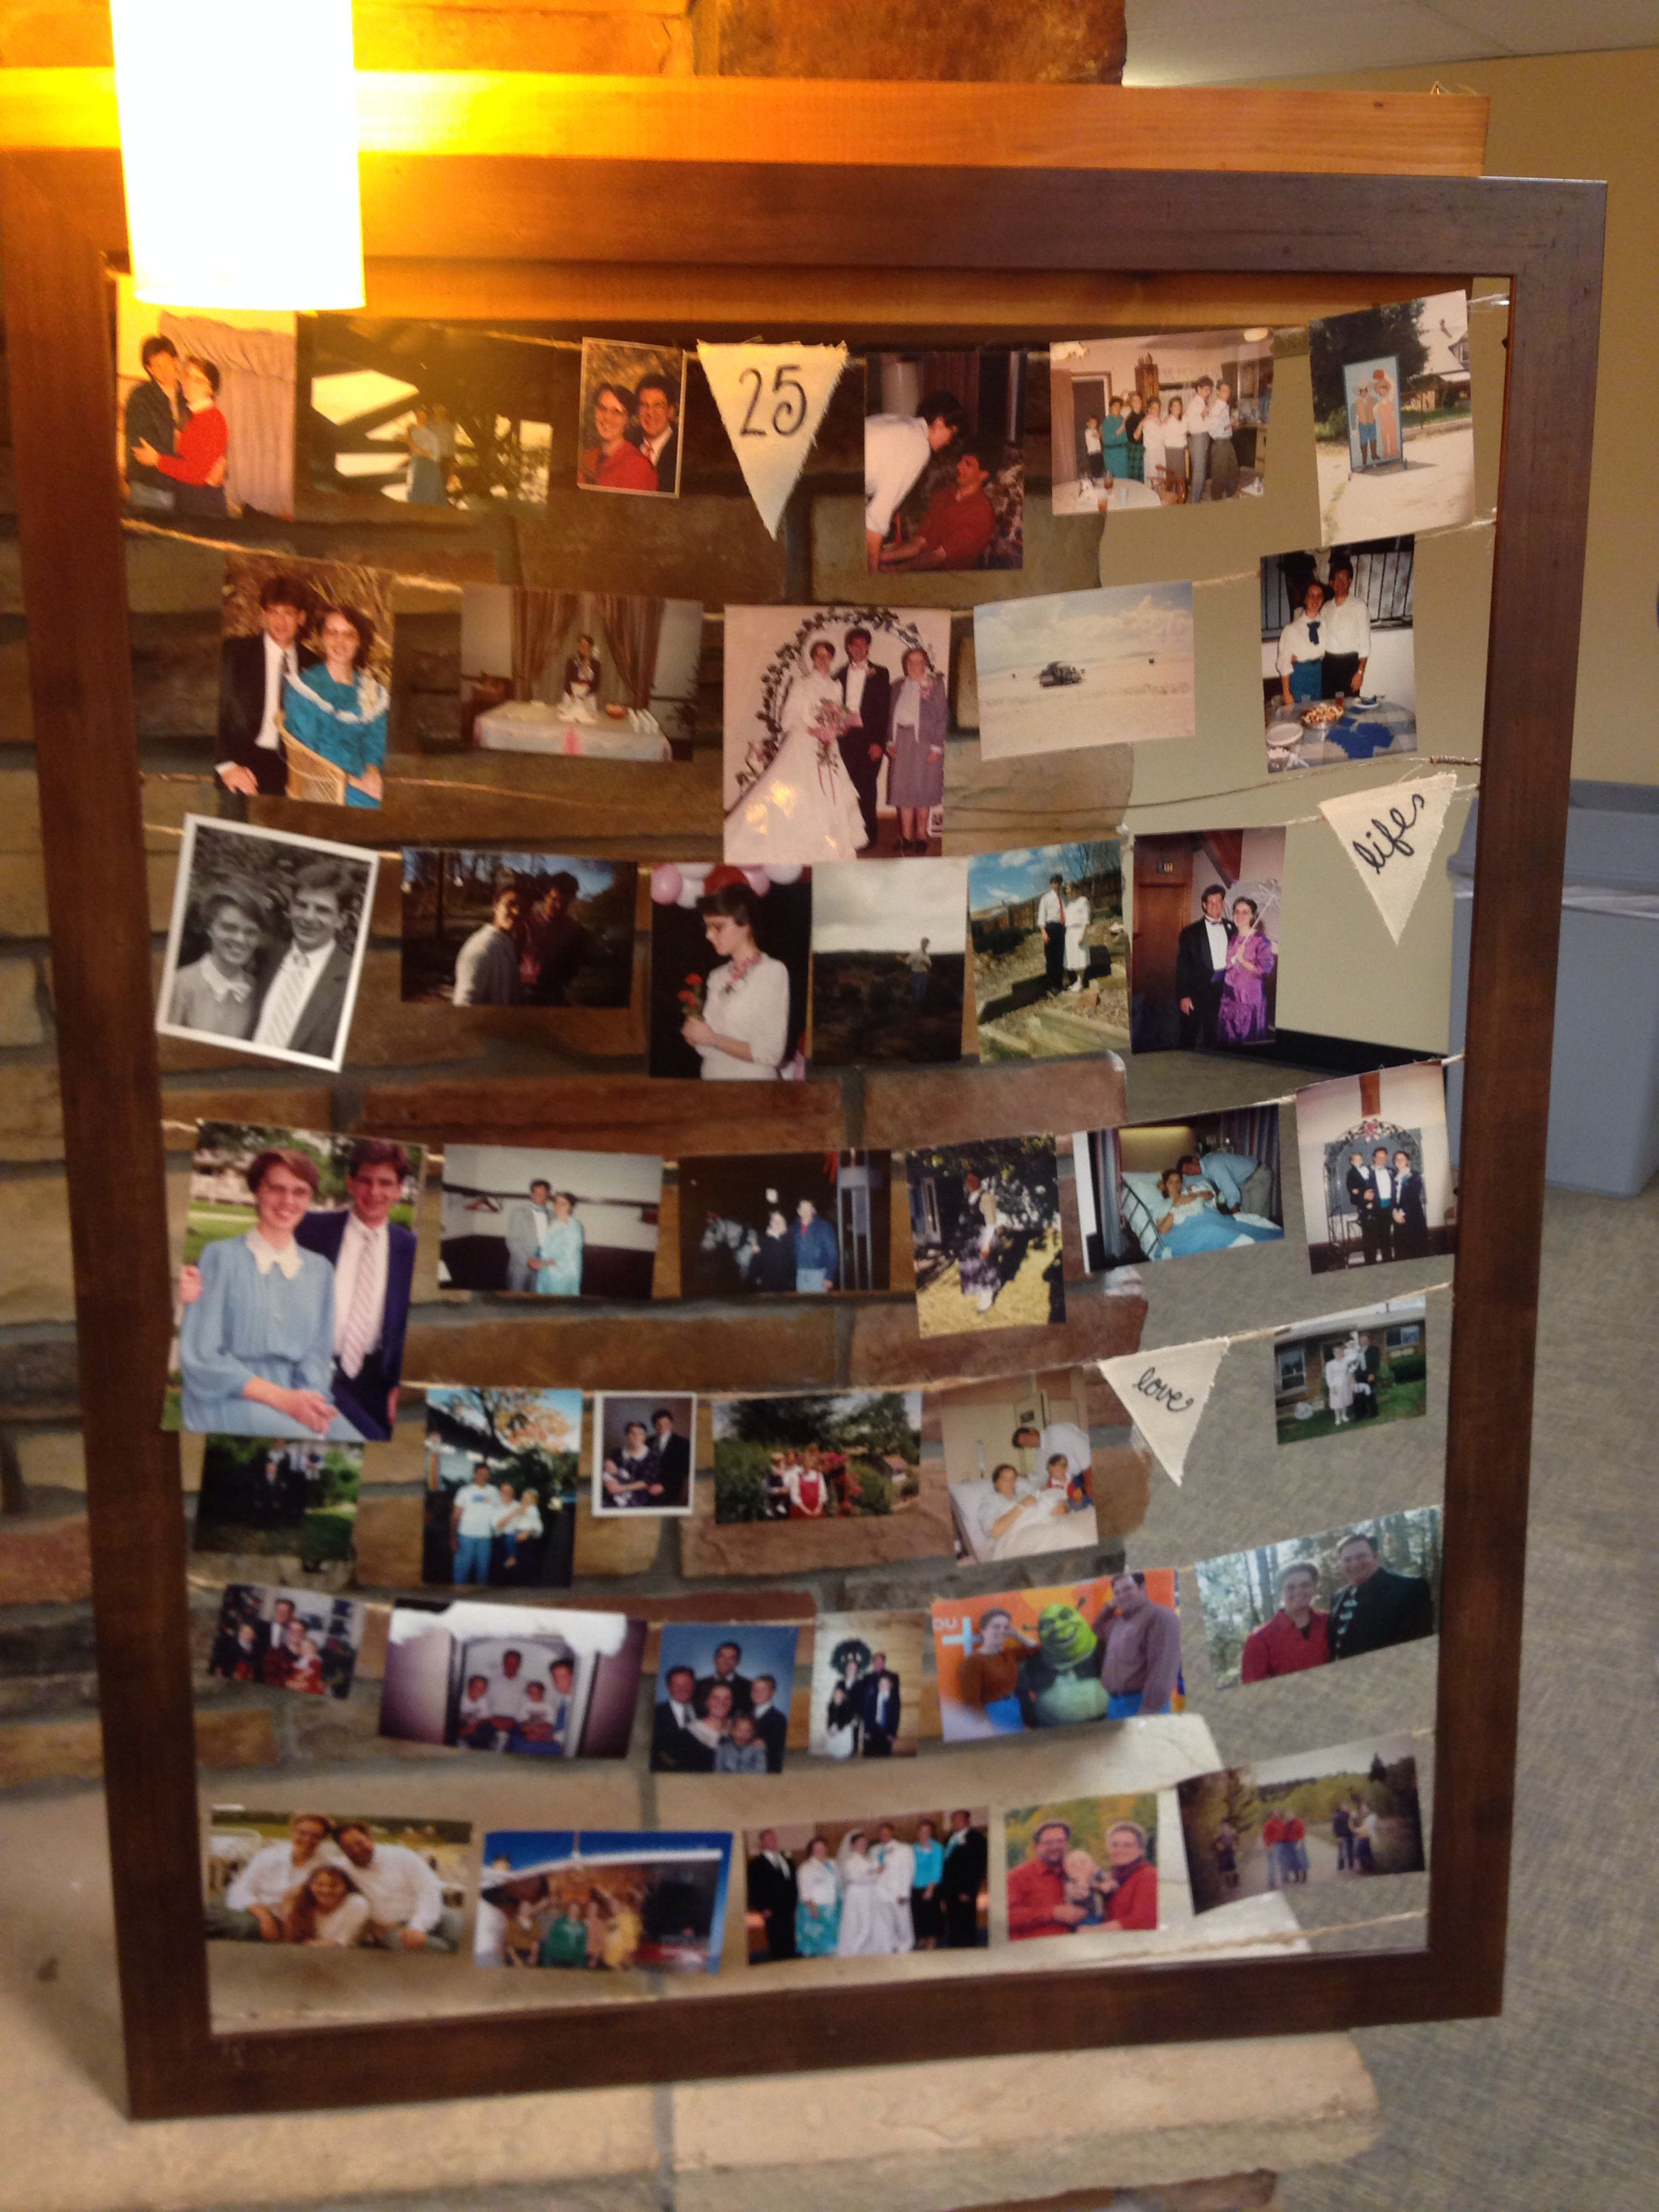 A Timeline Photo Frame With Pictures Of 25 Years Of